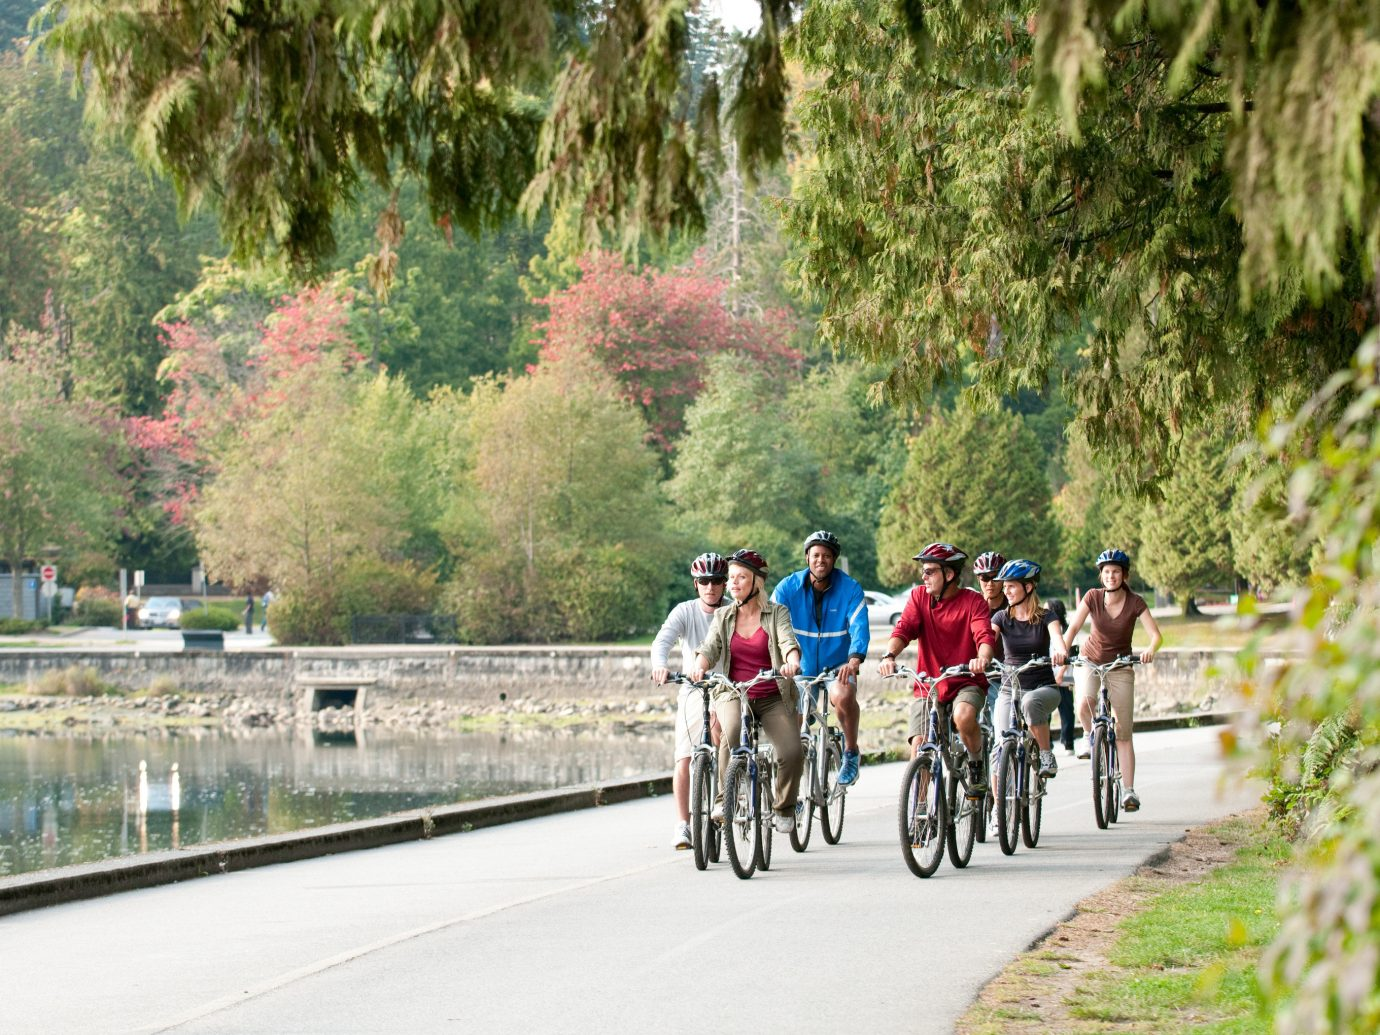 Health + Wellness Trip Ideas tree outdoor road riding cycling bicycle people street sports tourism vehicle outdoor recreation road cycling tours recreation endurance sports way cycle sport waterway mountain bike traveling carriage bicycling